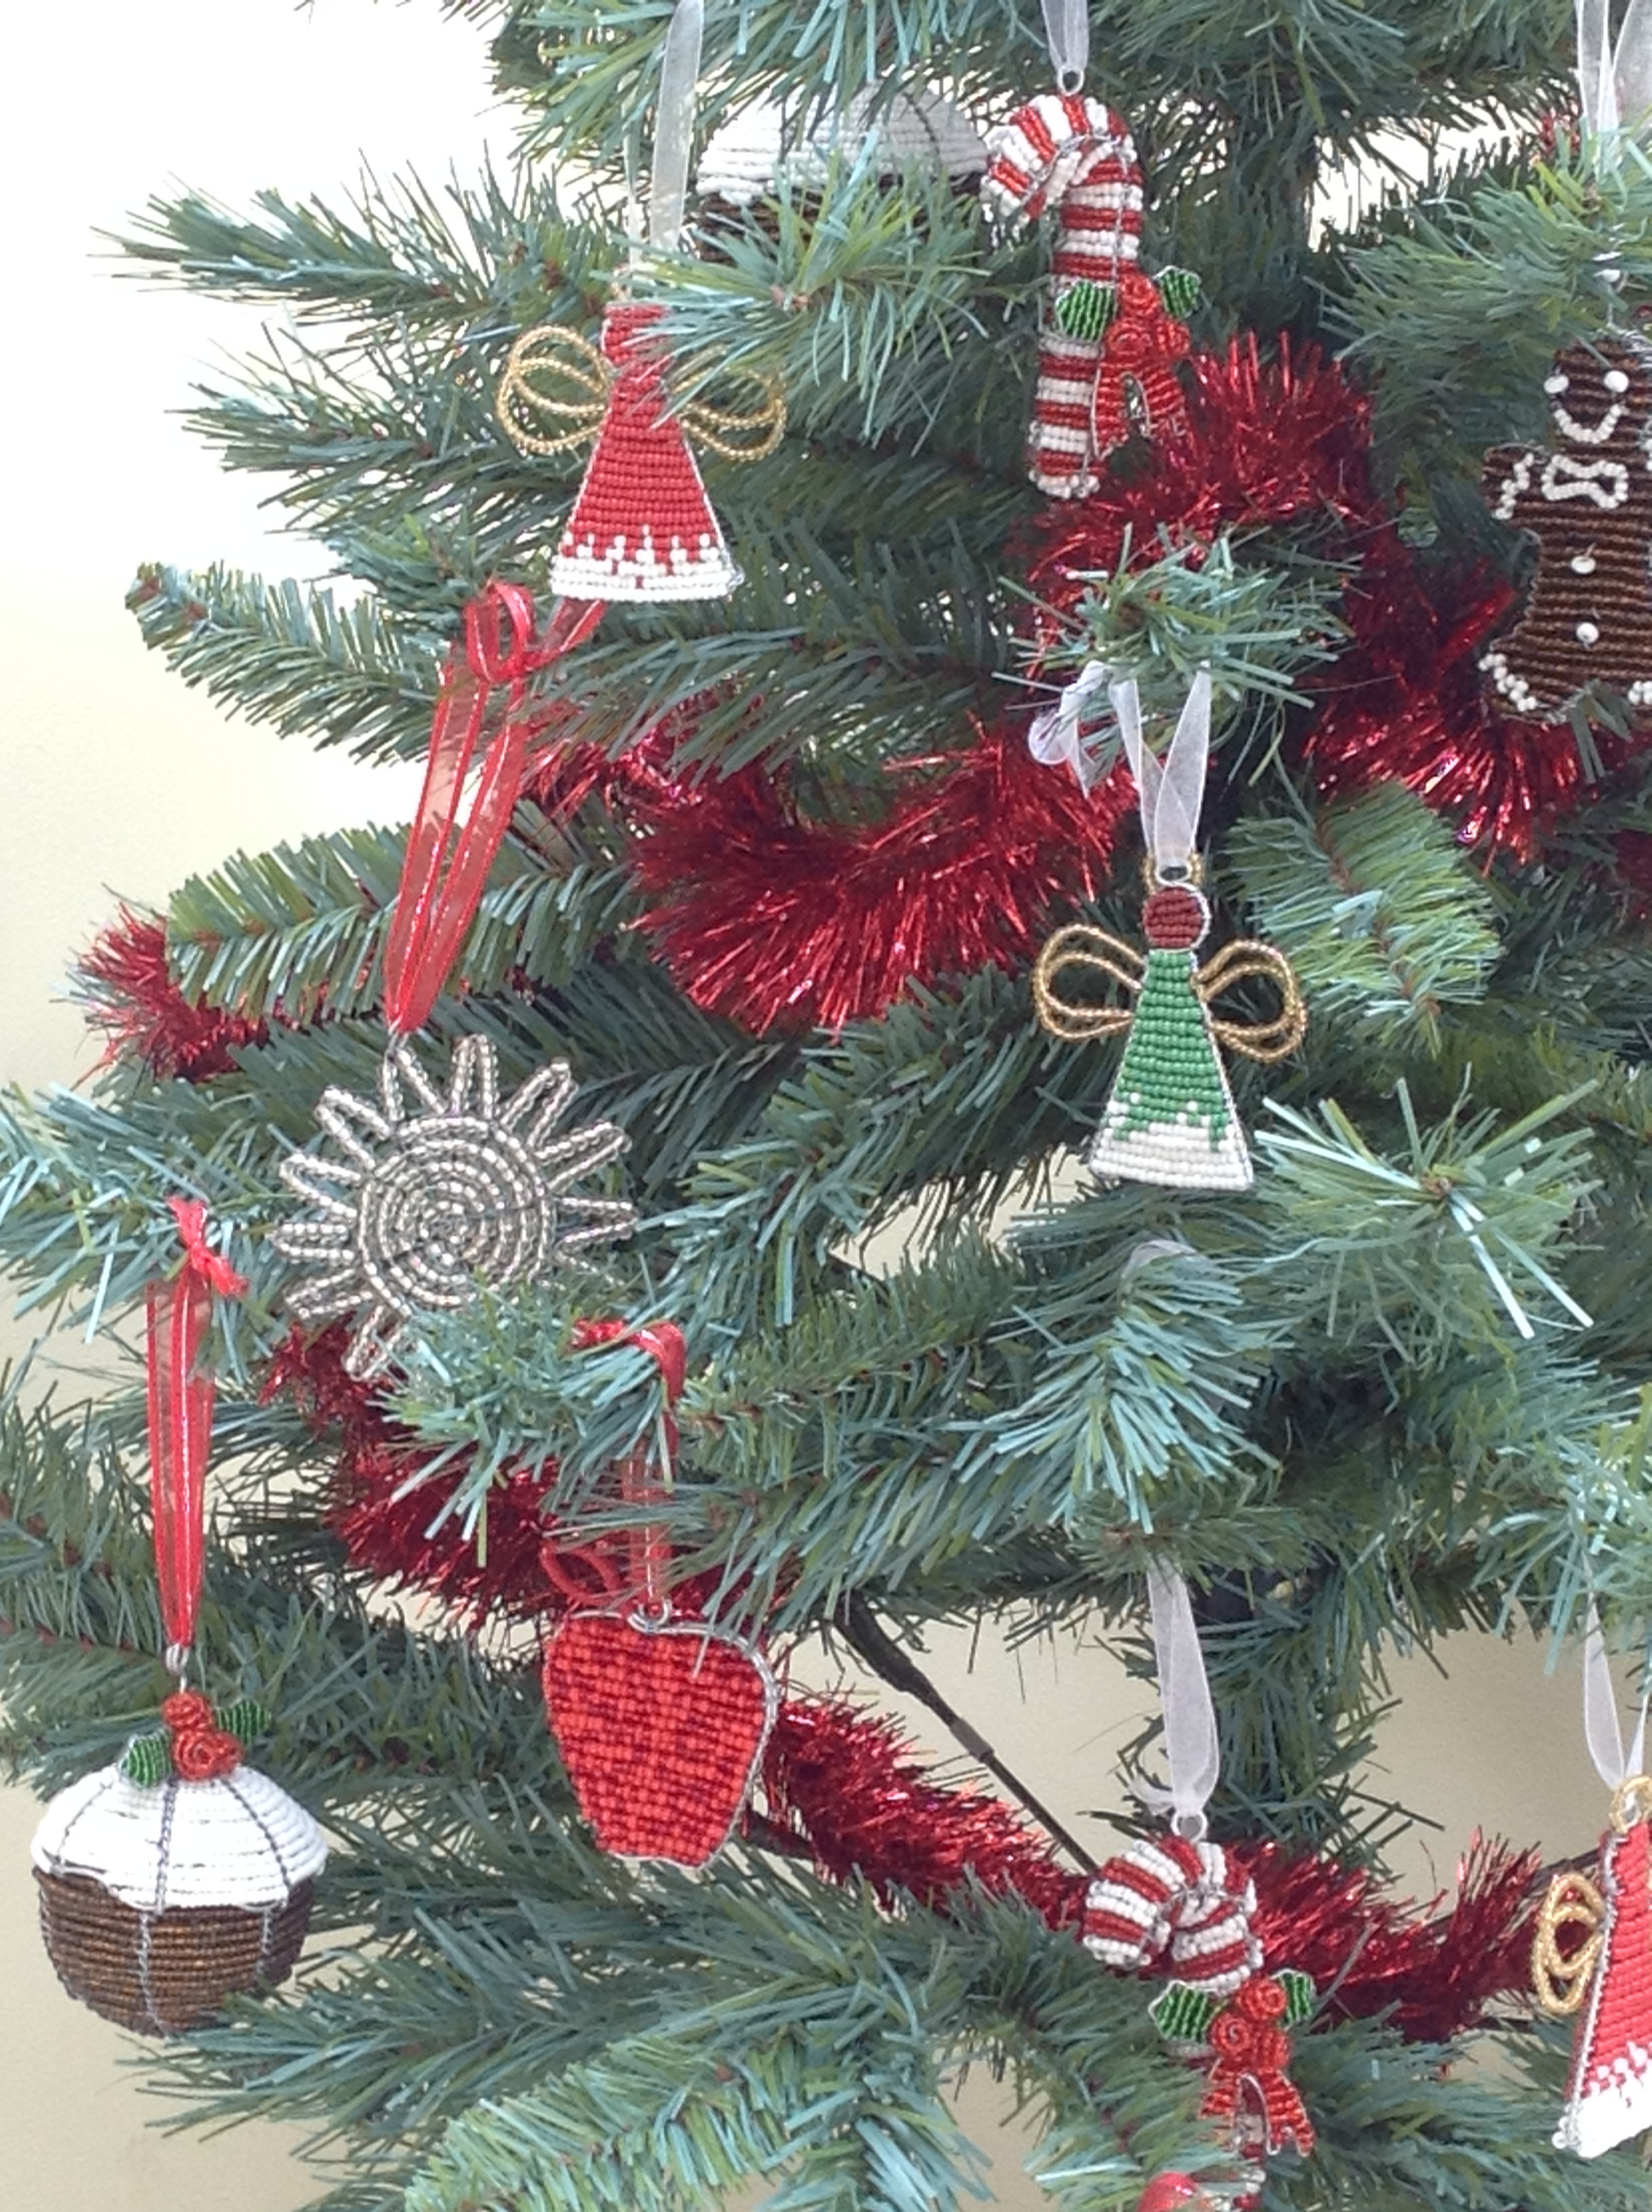 Candy Christmas Tree Decorations.Christmastree Decorations Candy Caneauradecor Designs